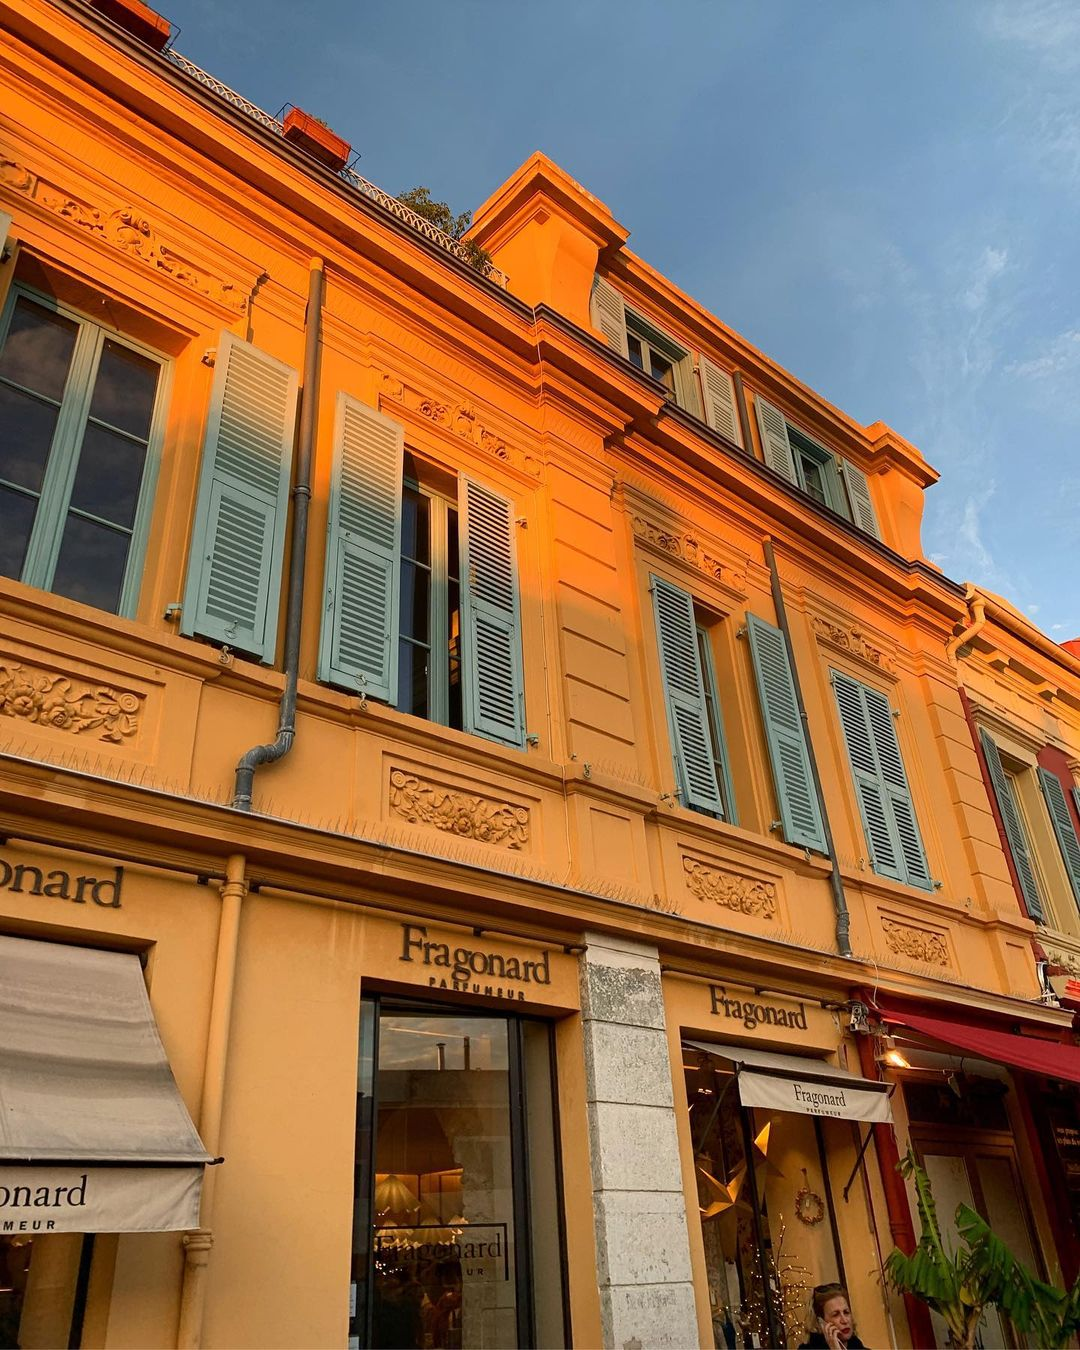 5 holiday memories to bring back from your stay in Nice - Credit fragonardparfumeurofficiel